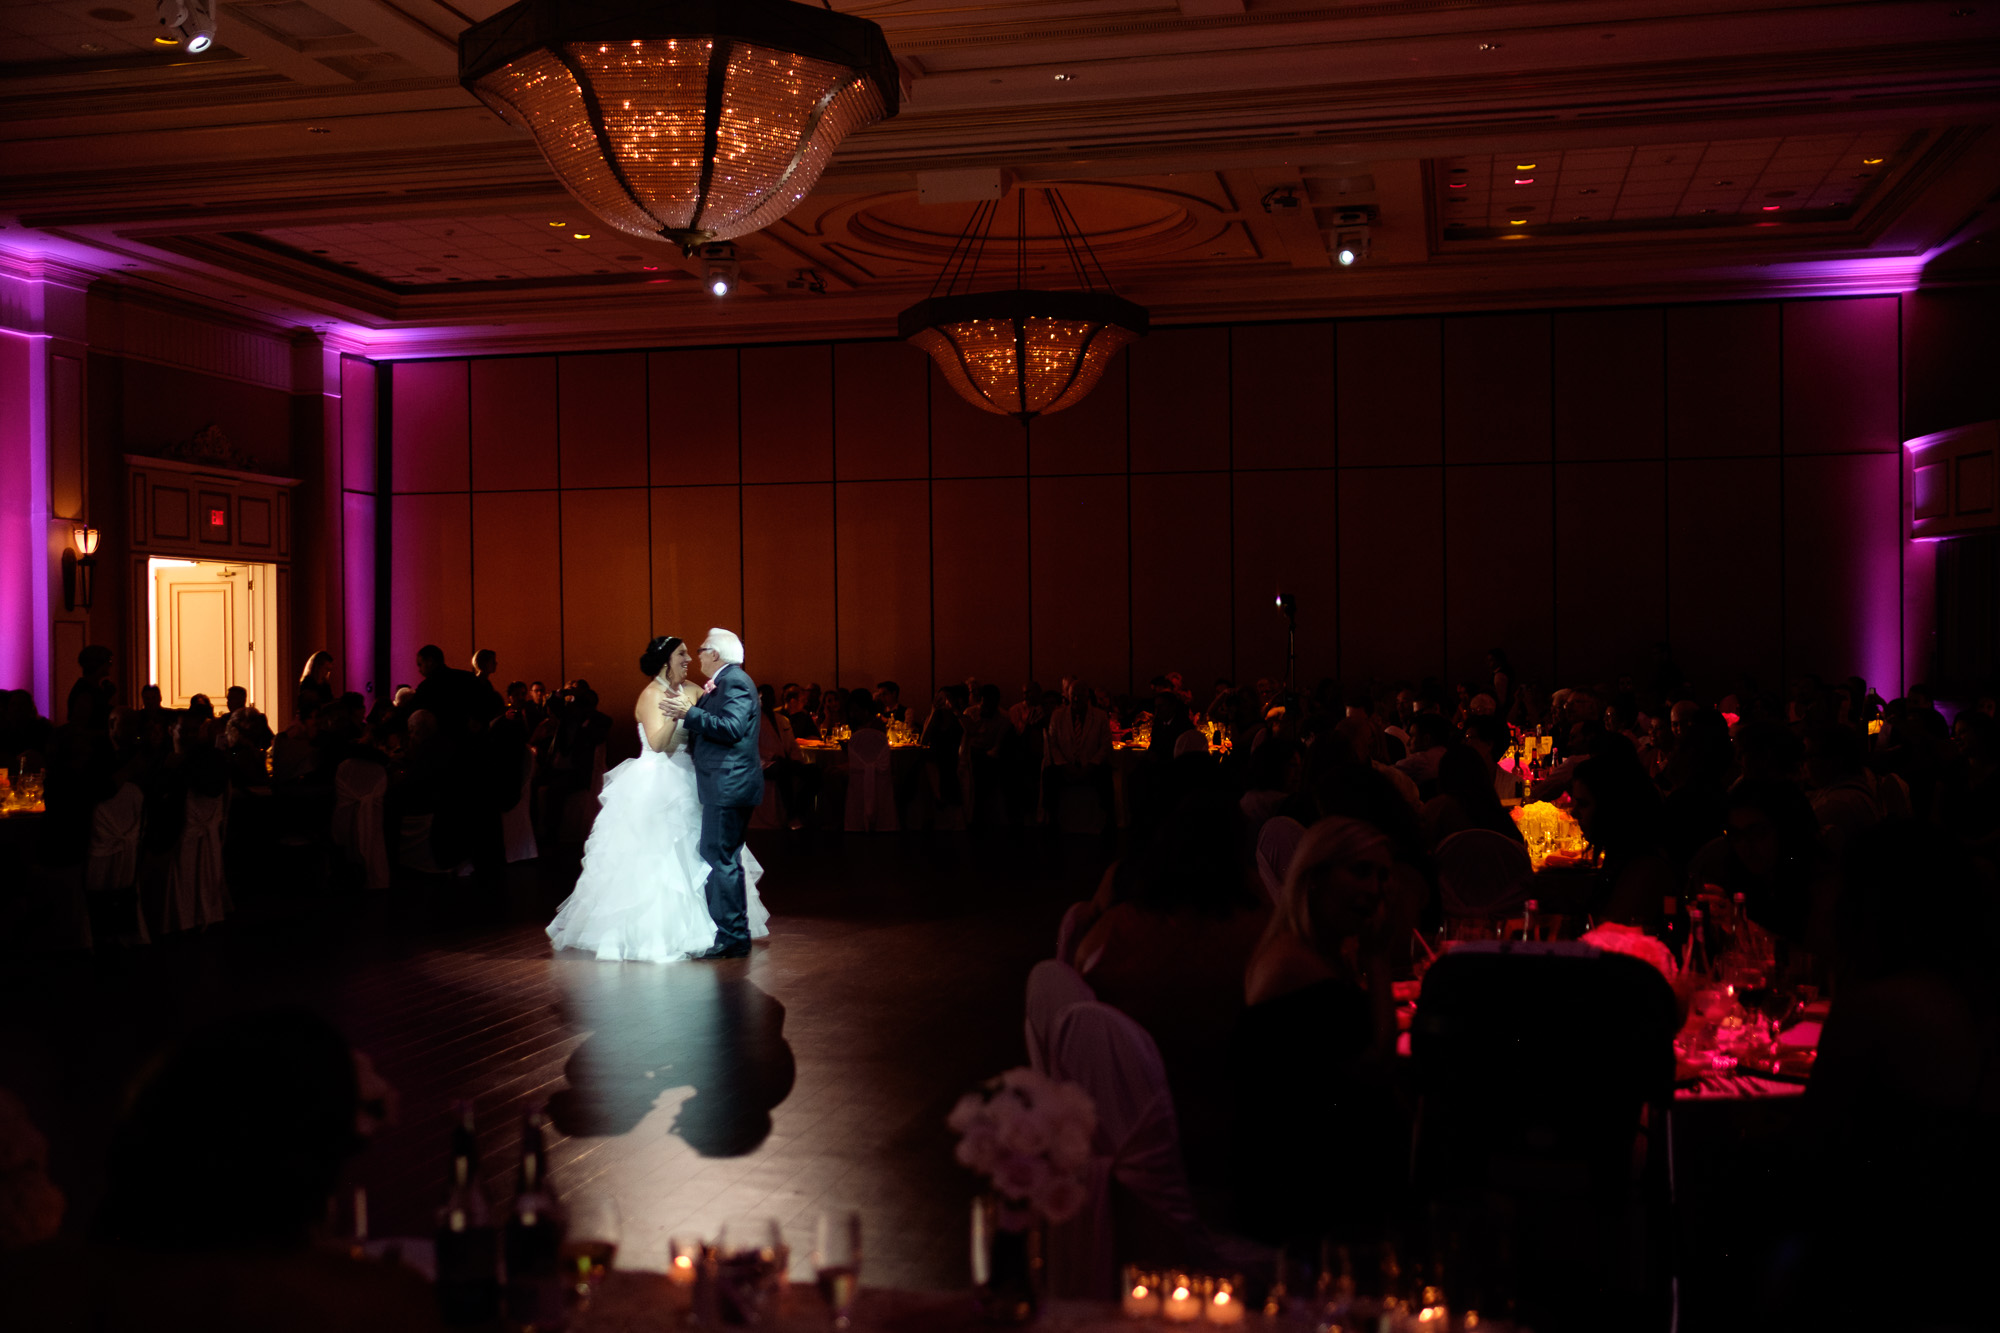 Melanie and her father share a dance during the wedding reception at the Toscana hall in Toronto.